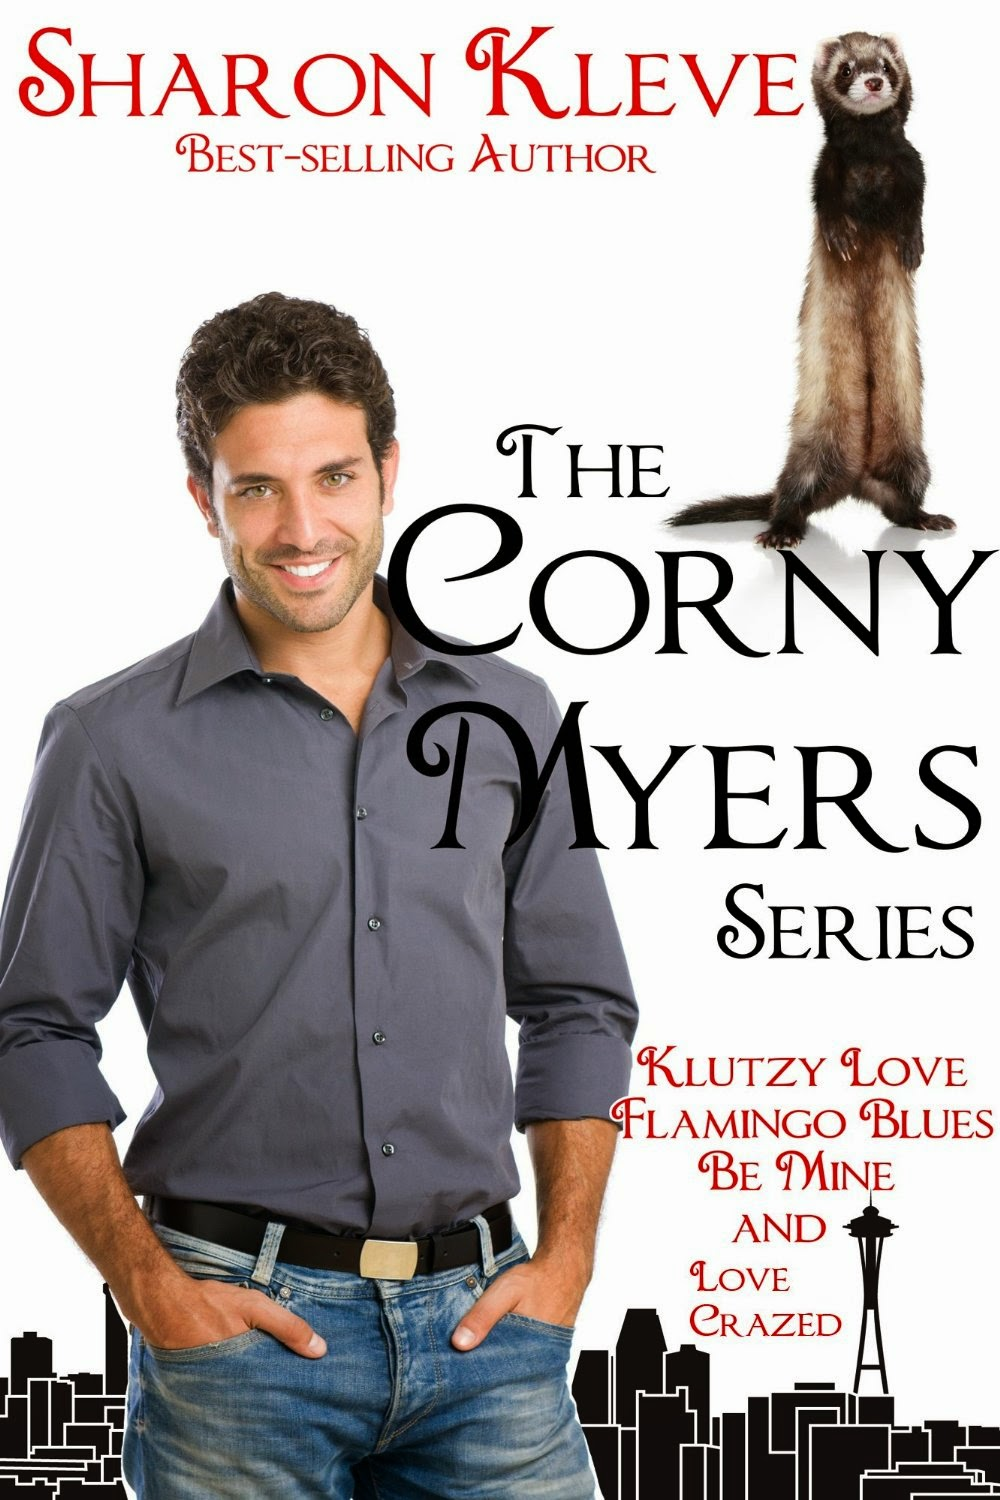 http://www.amazon.com/Corny-Myers-Sharon-Kleve-ebook/dp/B00CPFD2ZS/ref=sr_1_26?ie=UTF8&qid=1421687207&sr=8-26&keywords=sharon+kleve